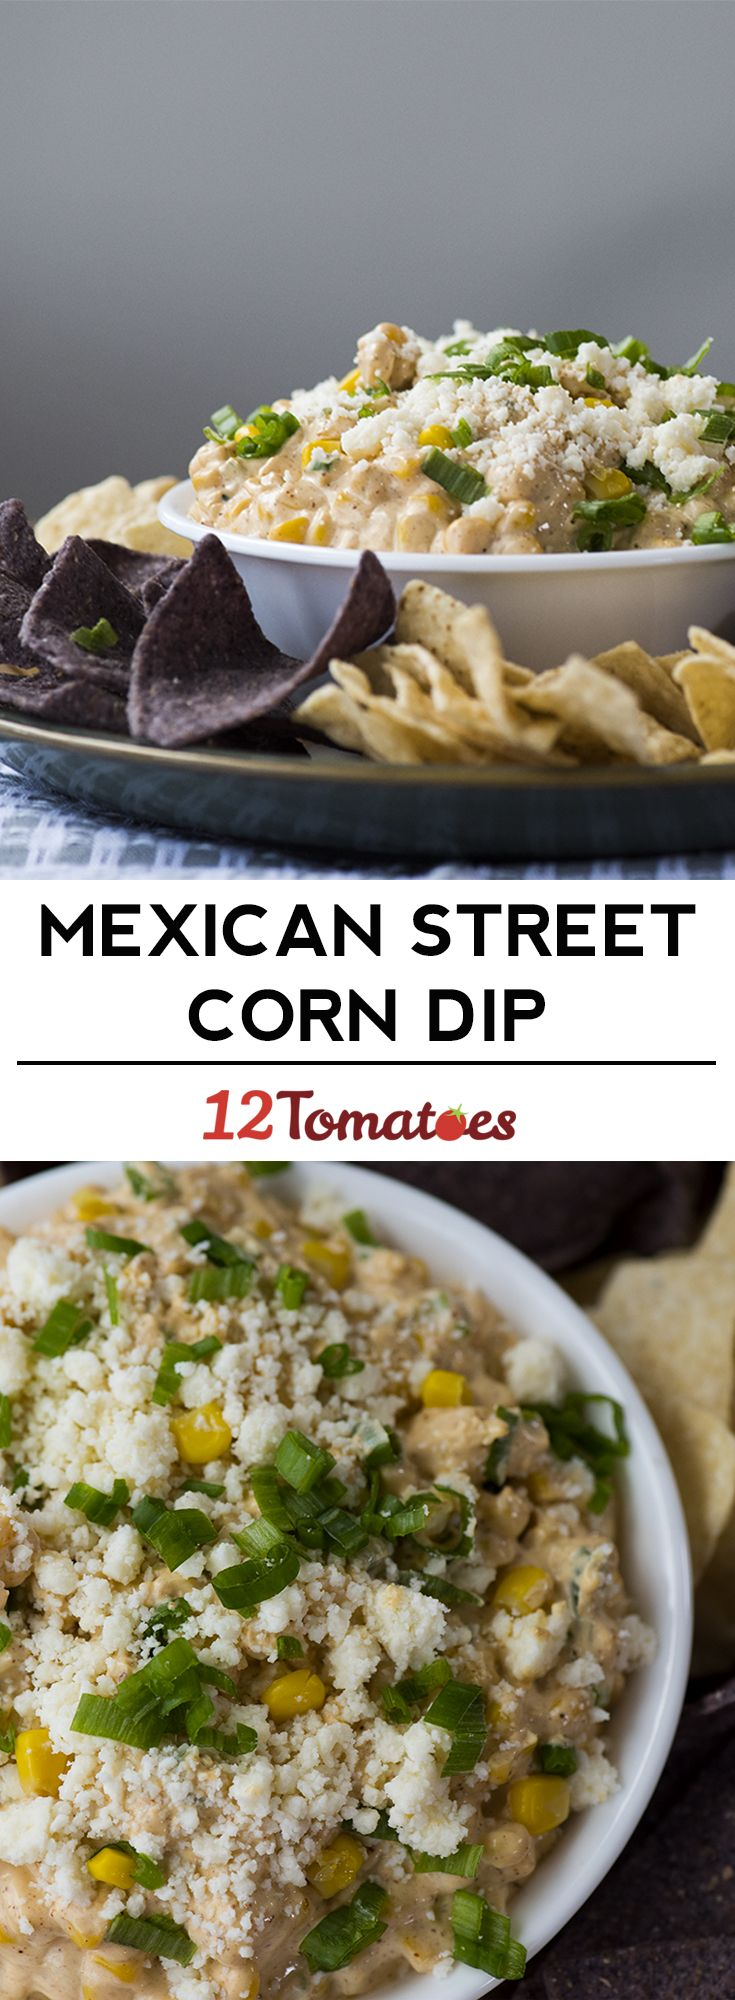 If you've ever tried Mexican street corn, you'll know how delicious it is: corn on the cob smothered with...